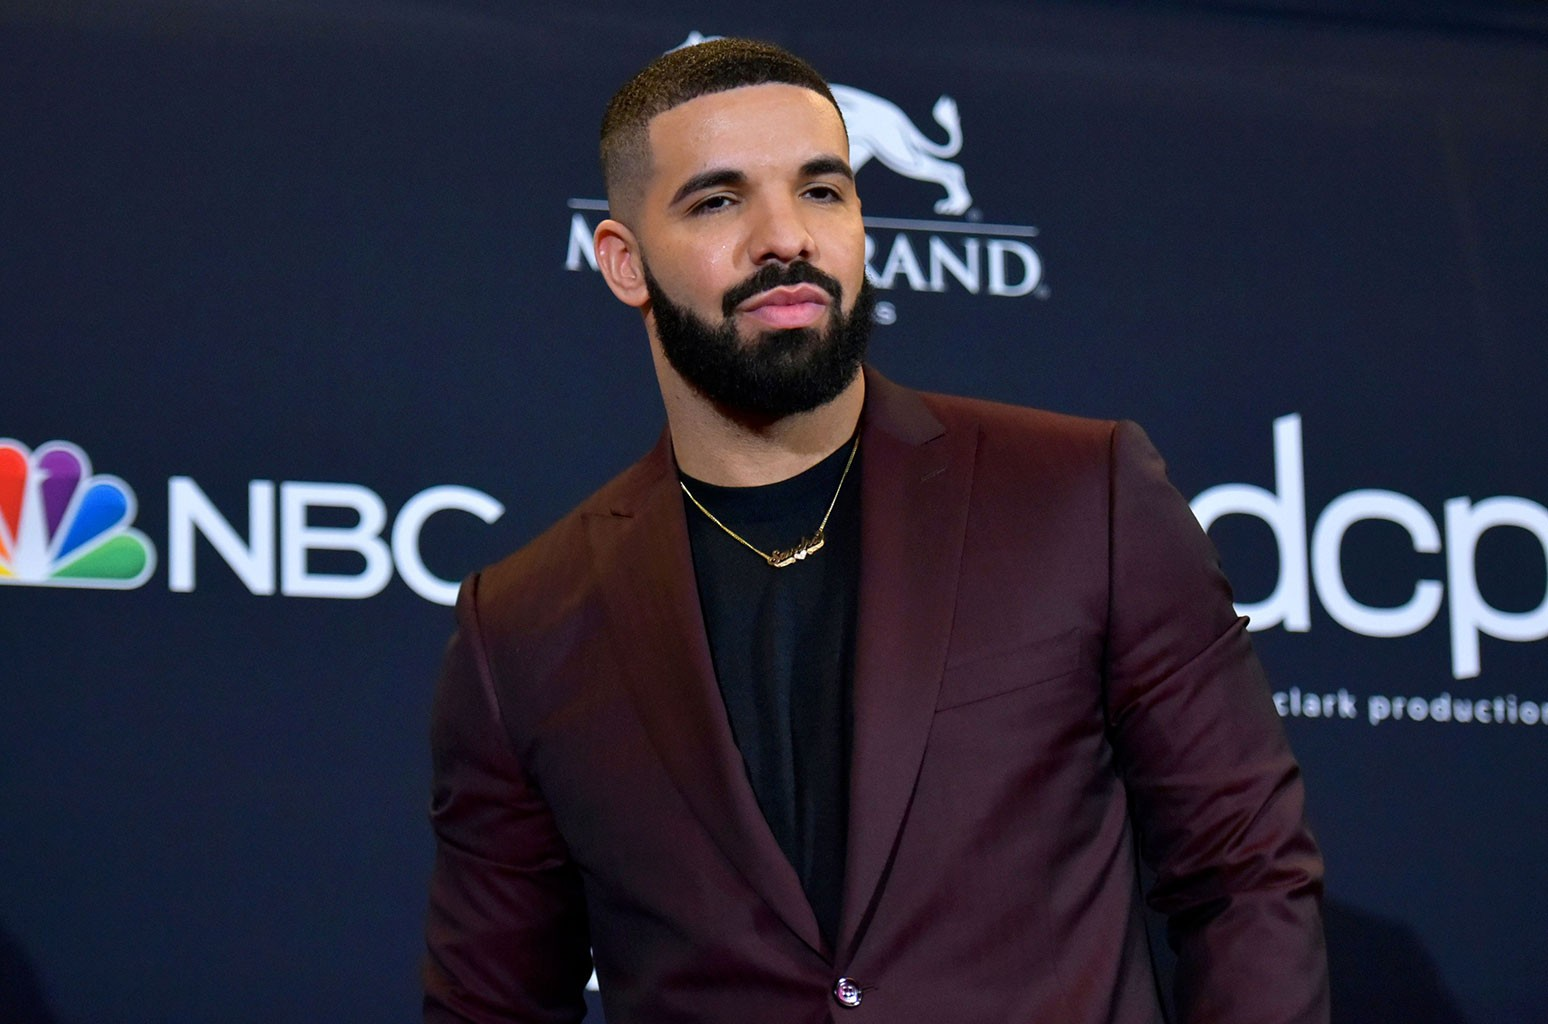 Drake Reveals He Experienced Hair Loss After Contracting COVID